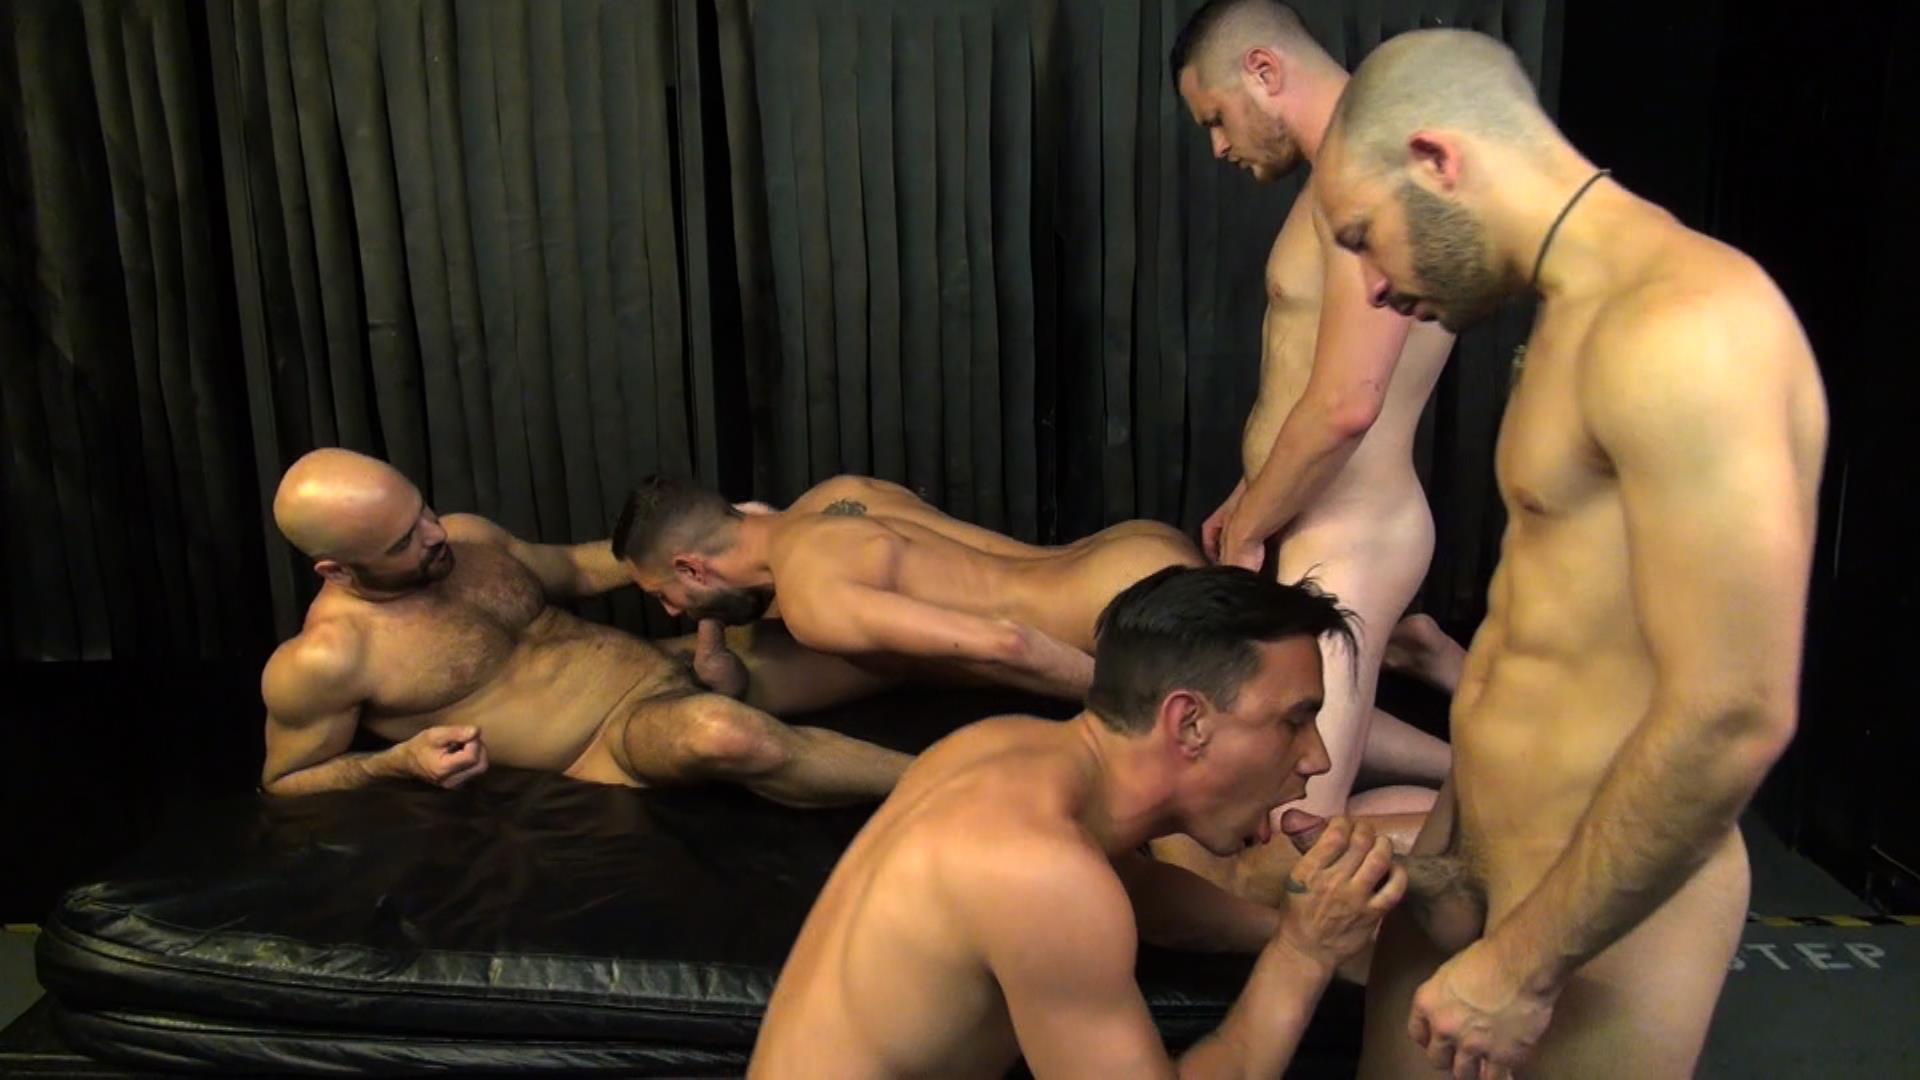 Raw-Fuck-Club-Blue-Bailey-and-Dylan-Strokes-and-Adam-Russo-and-Dean-Brody-and-Jay-Brix-Bareback-Orgy-Amateur-Gay-Porn-1 Adam Russo Getting Double Penetrated At A Bareback Sex Party